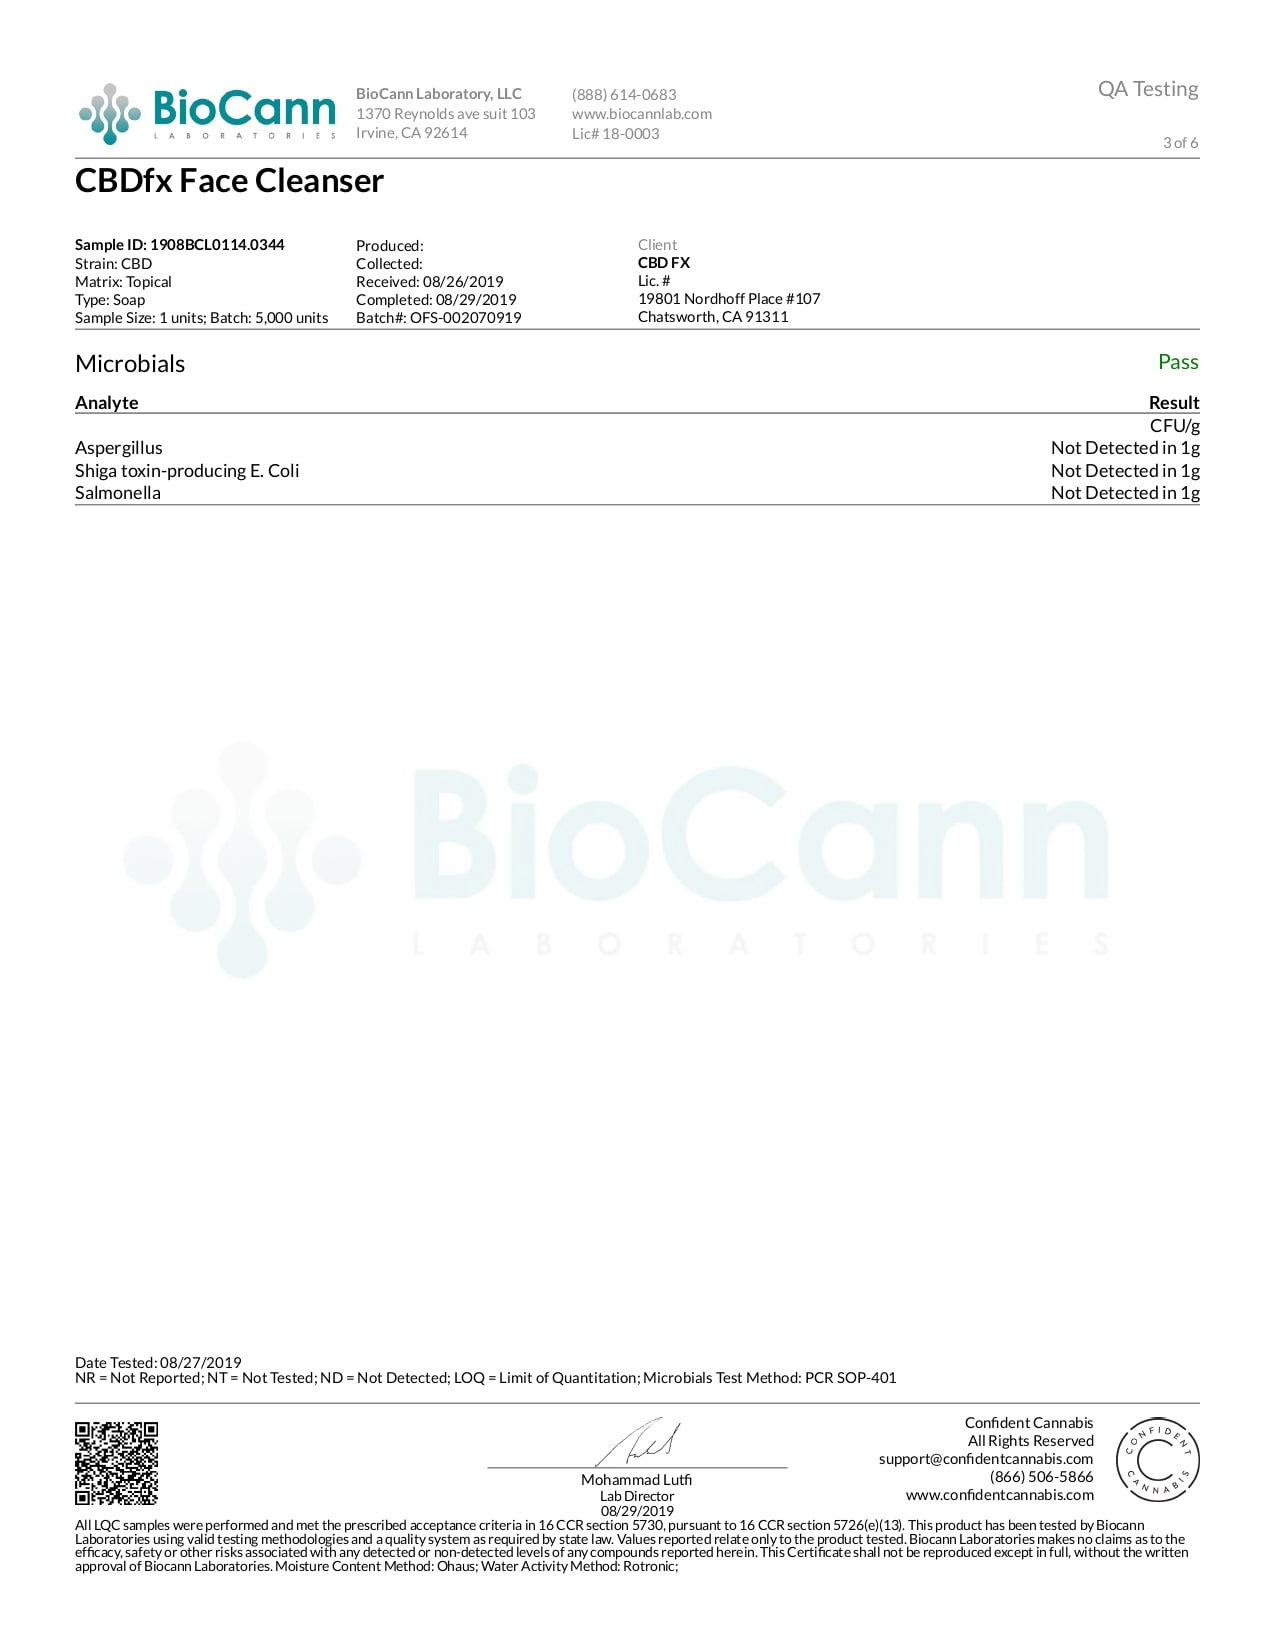 CBDfx CBD Face Cleanser Rejuvediol Lab Report Broad Spectrum 50mg